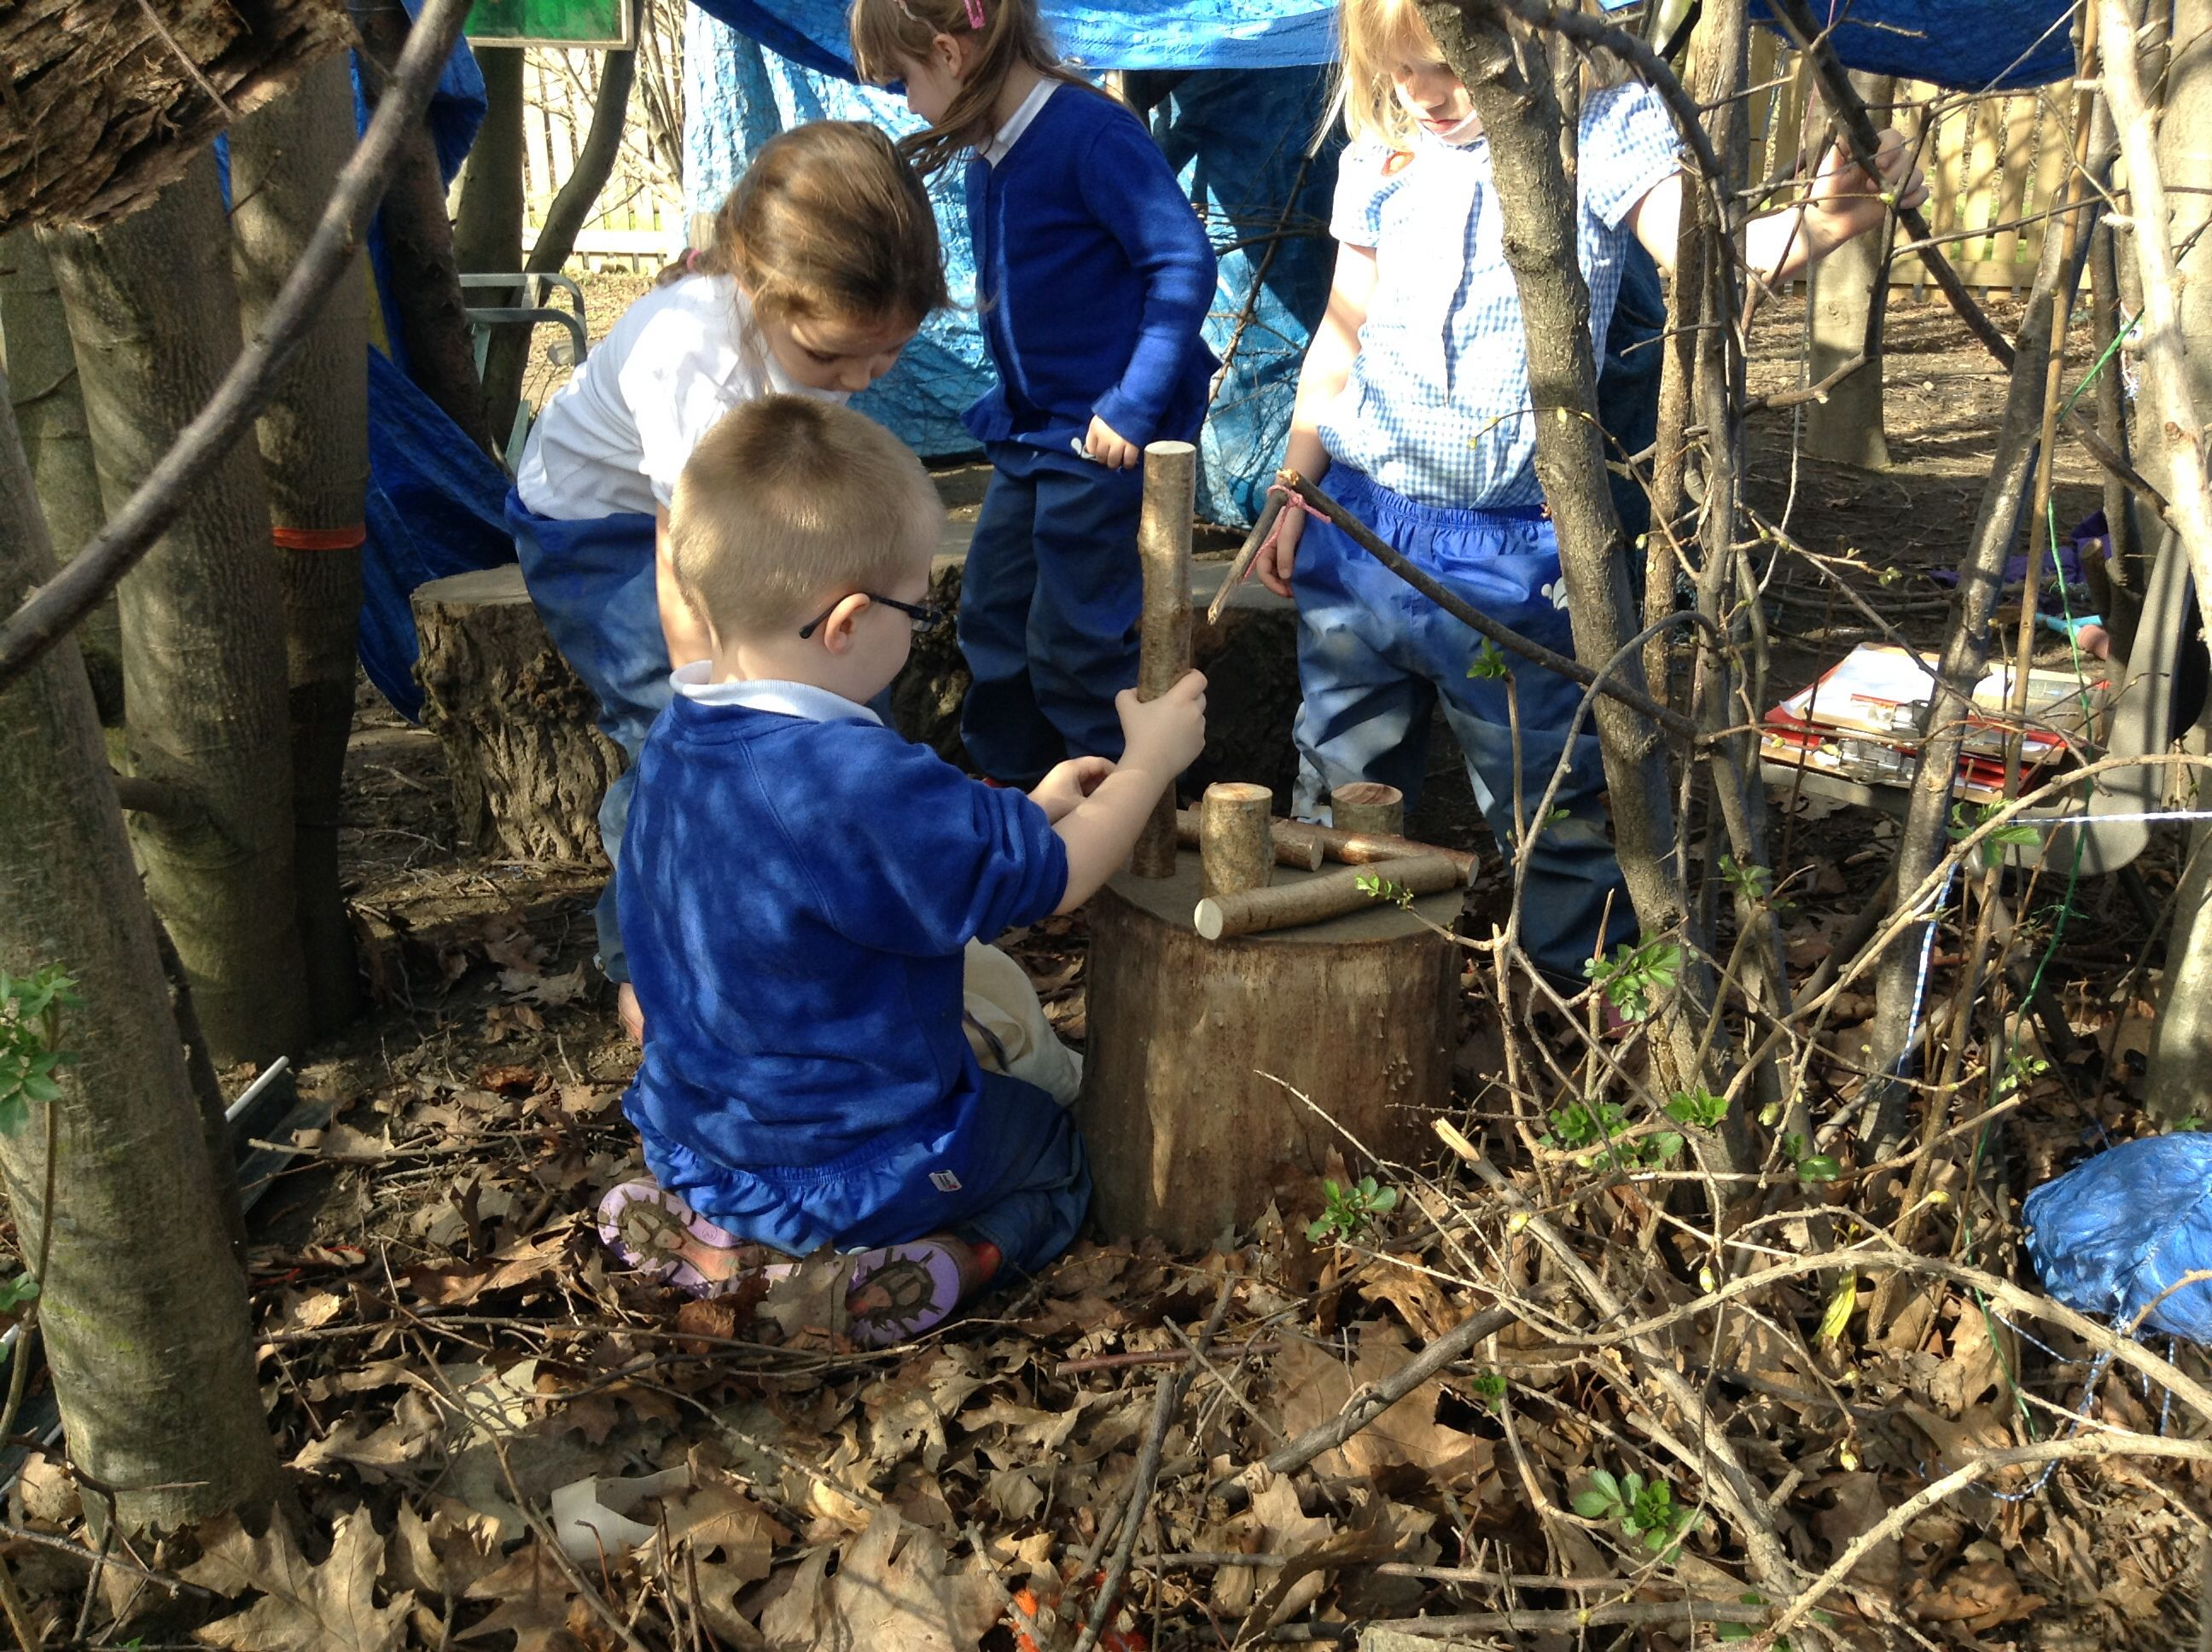 Making fairy dens in our big den (With images) | Eyfs ...